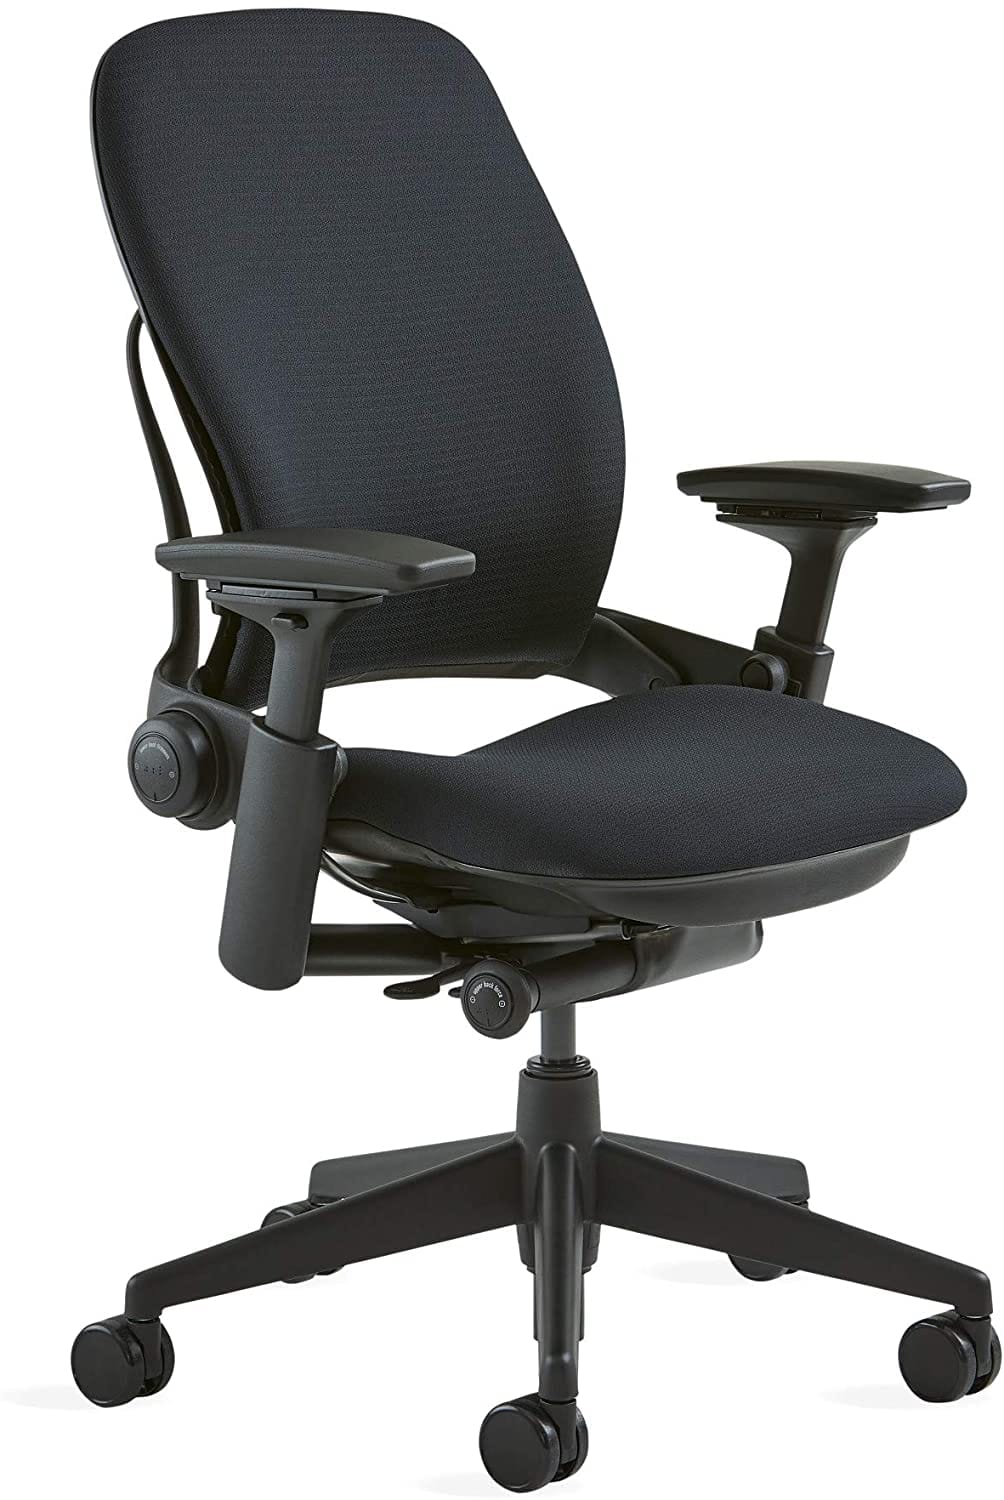 new Steelcase Leap chair $705 +tax +FS (black) @ Amazon, seller Amazon, authorized reseller